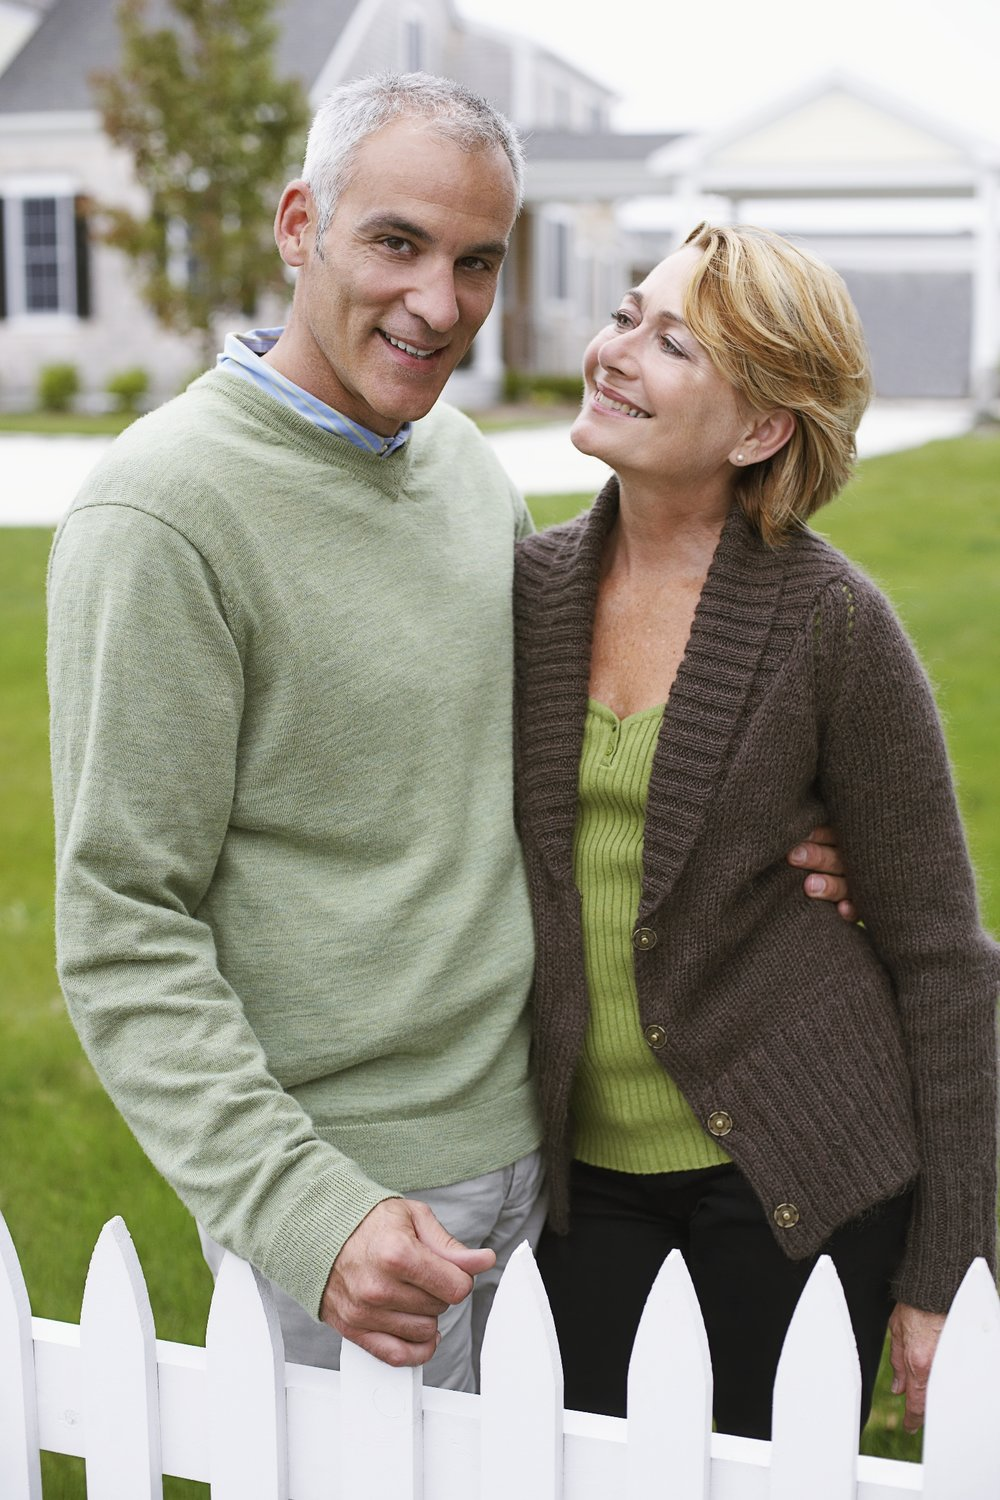 Dr. Kellogg can provide you with a happy, healthy smile.